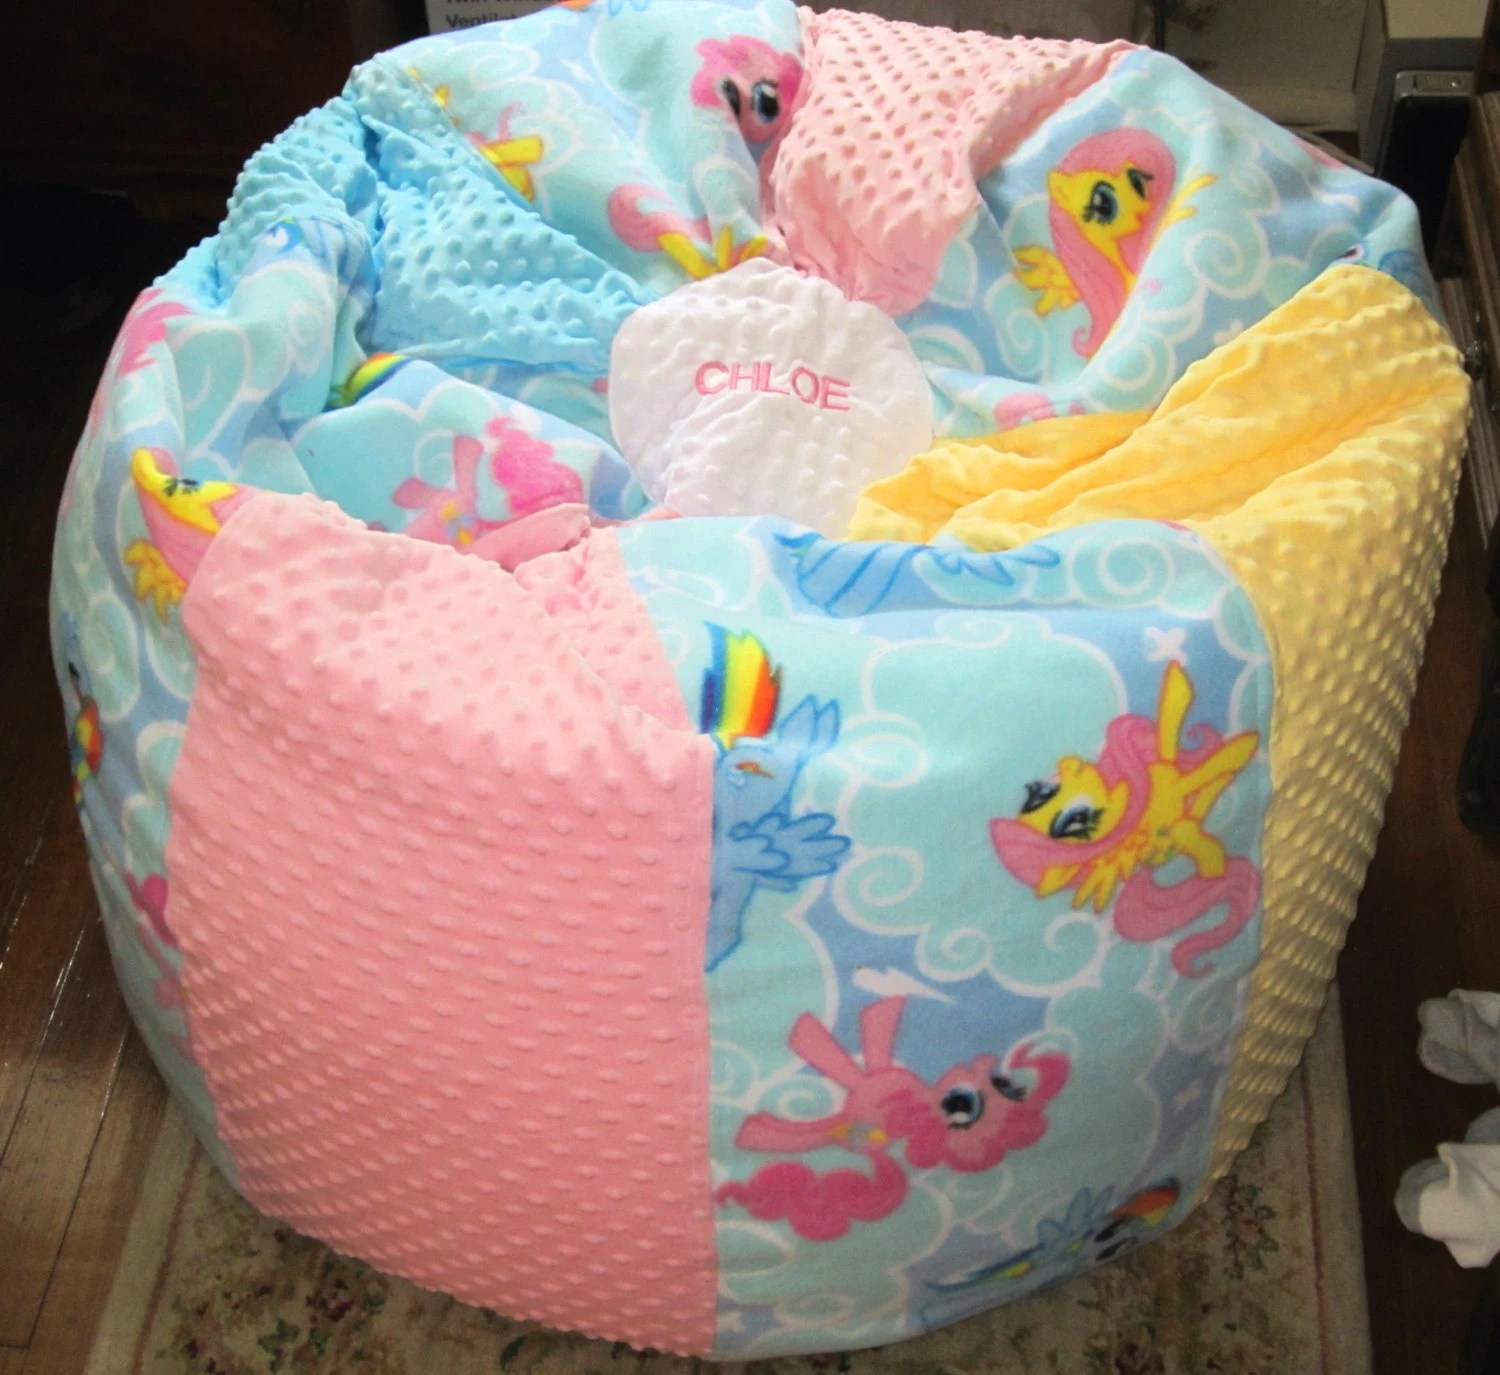 Where Can I Buy A Bean Bag Chair Tween My Little Pony Bean Bag Chair Cover Only Add A Name